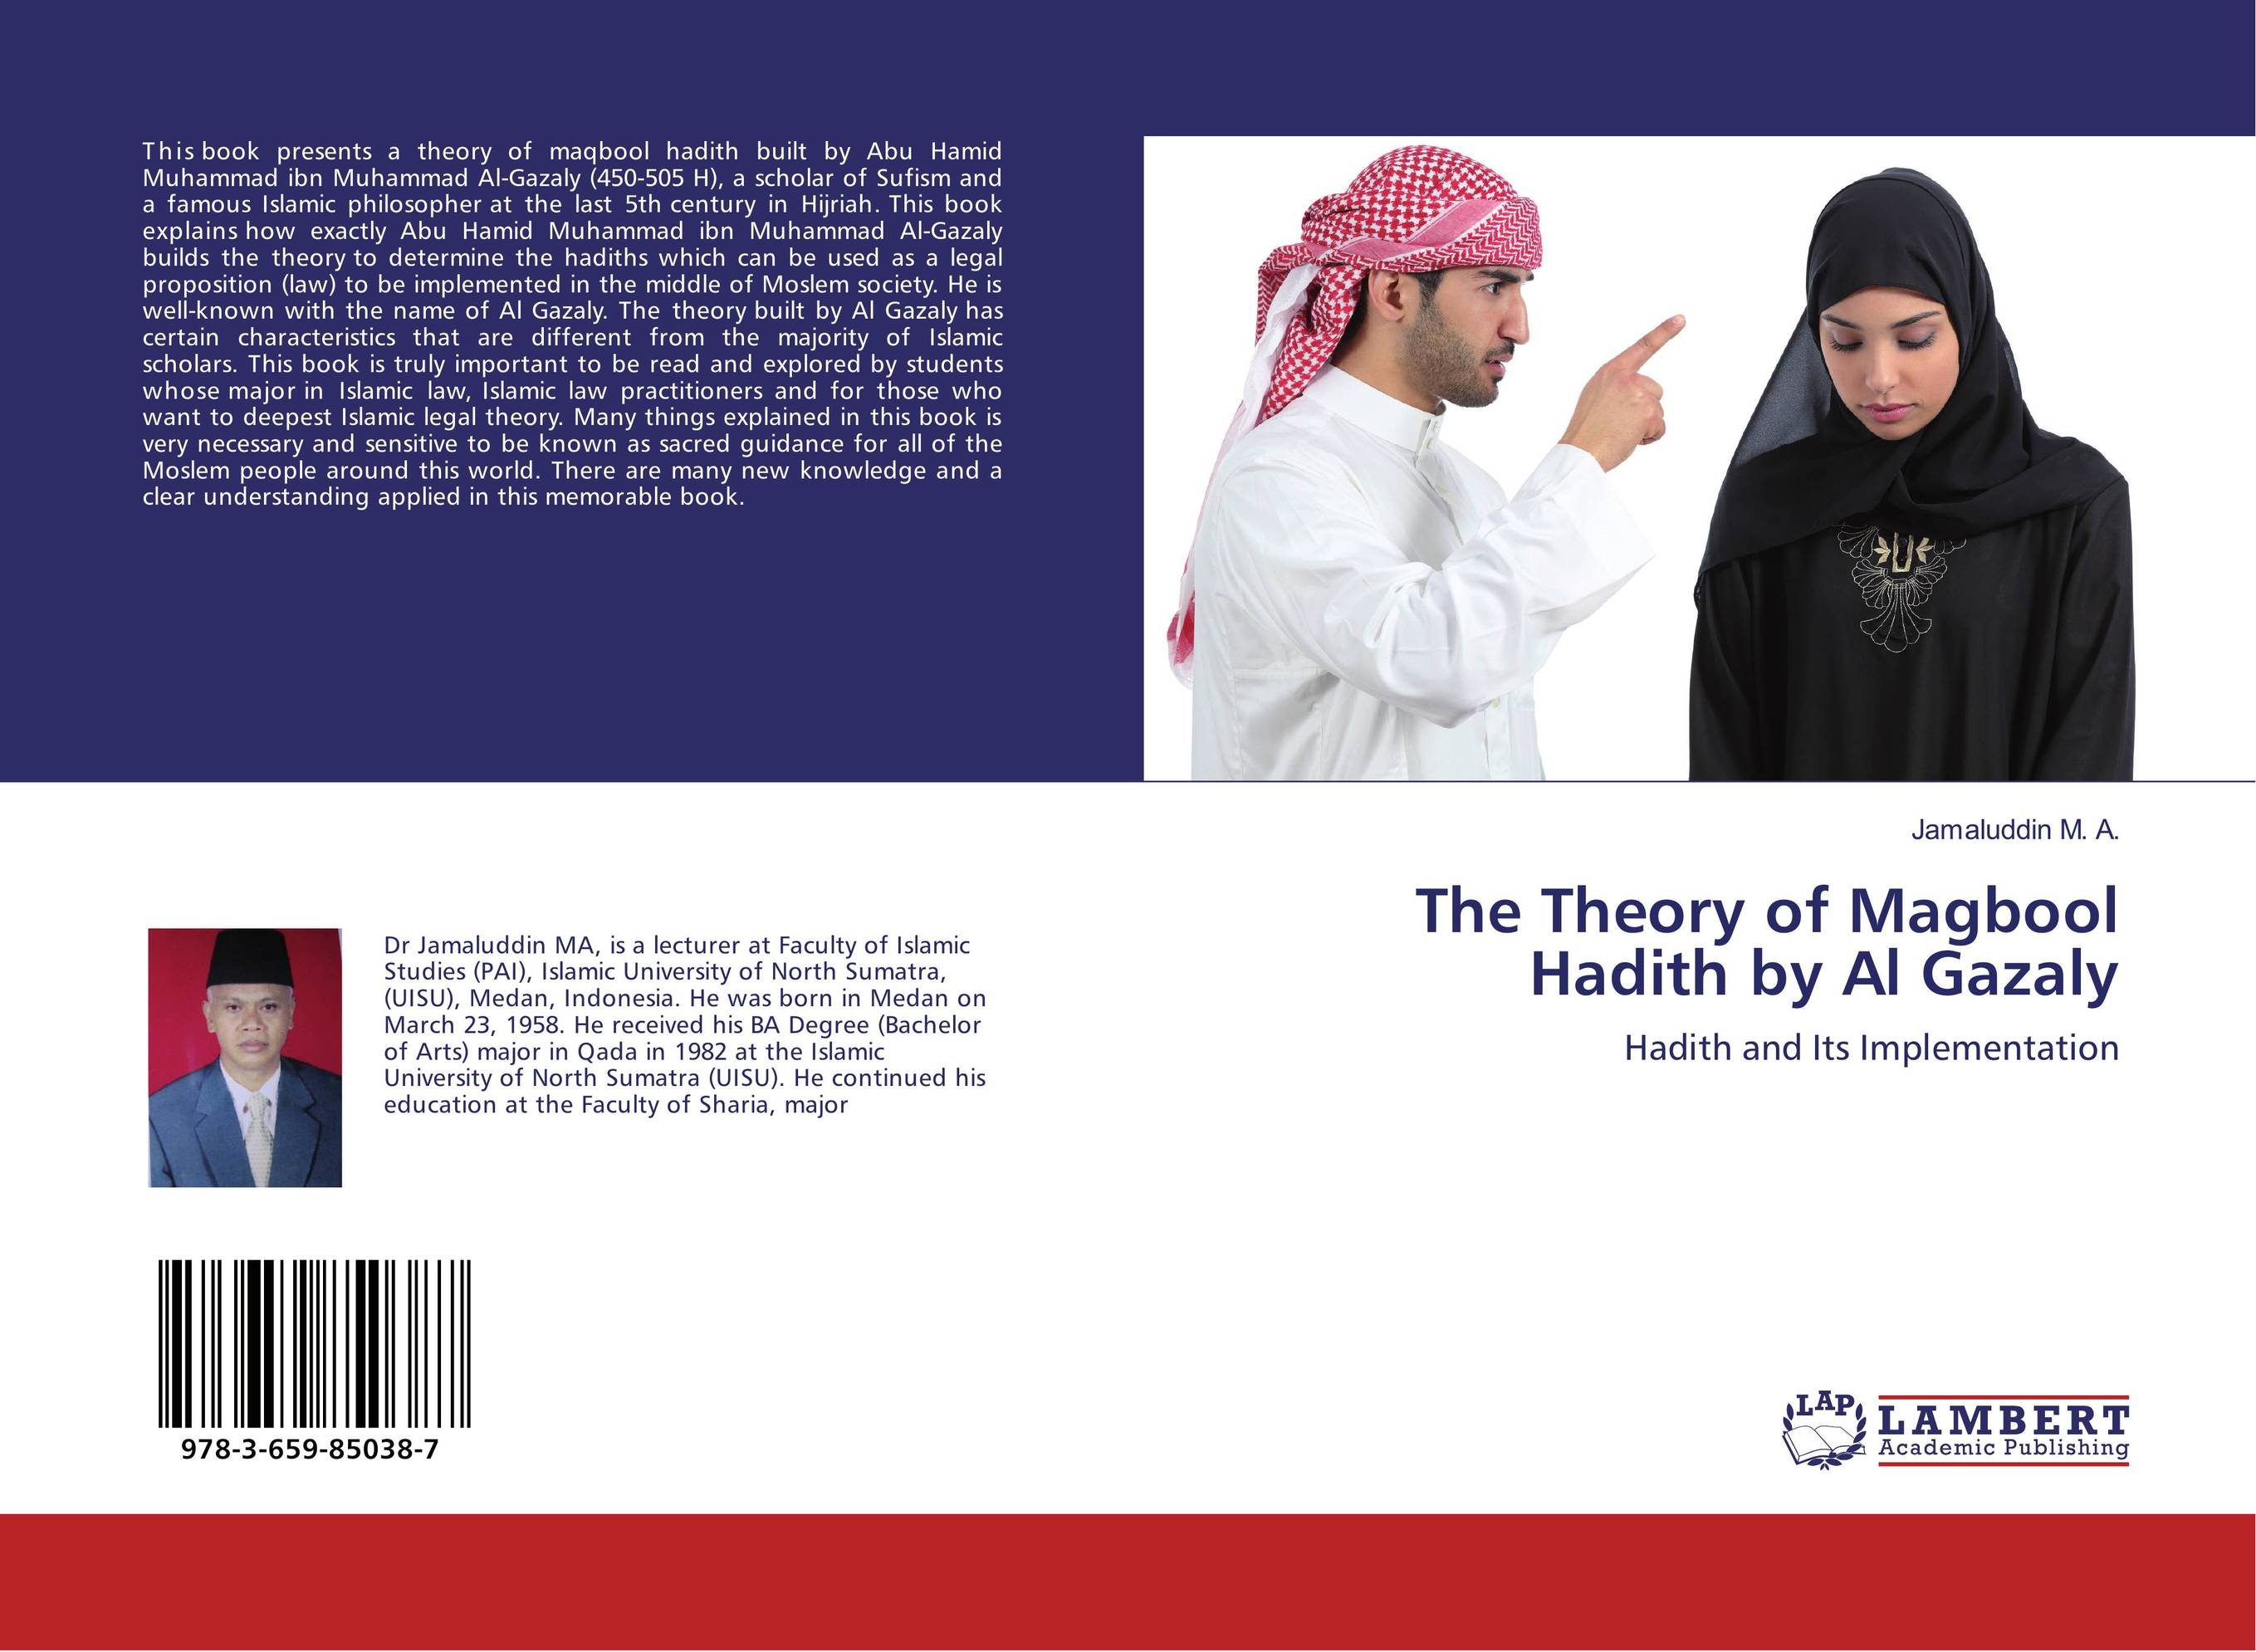 The Theory of Magbool Hadith by Al Gazaly muhammad saleem yusuf islamic commercial law